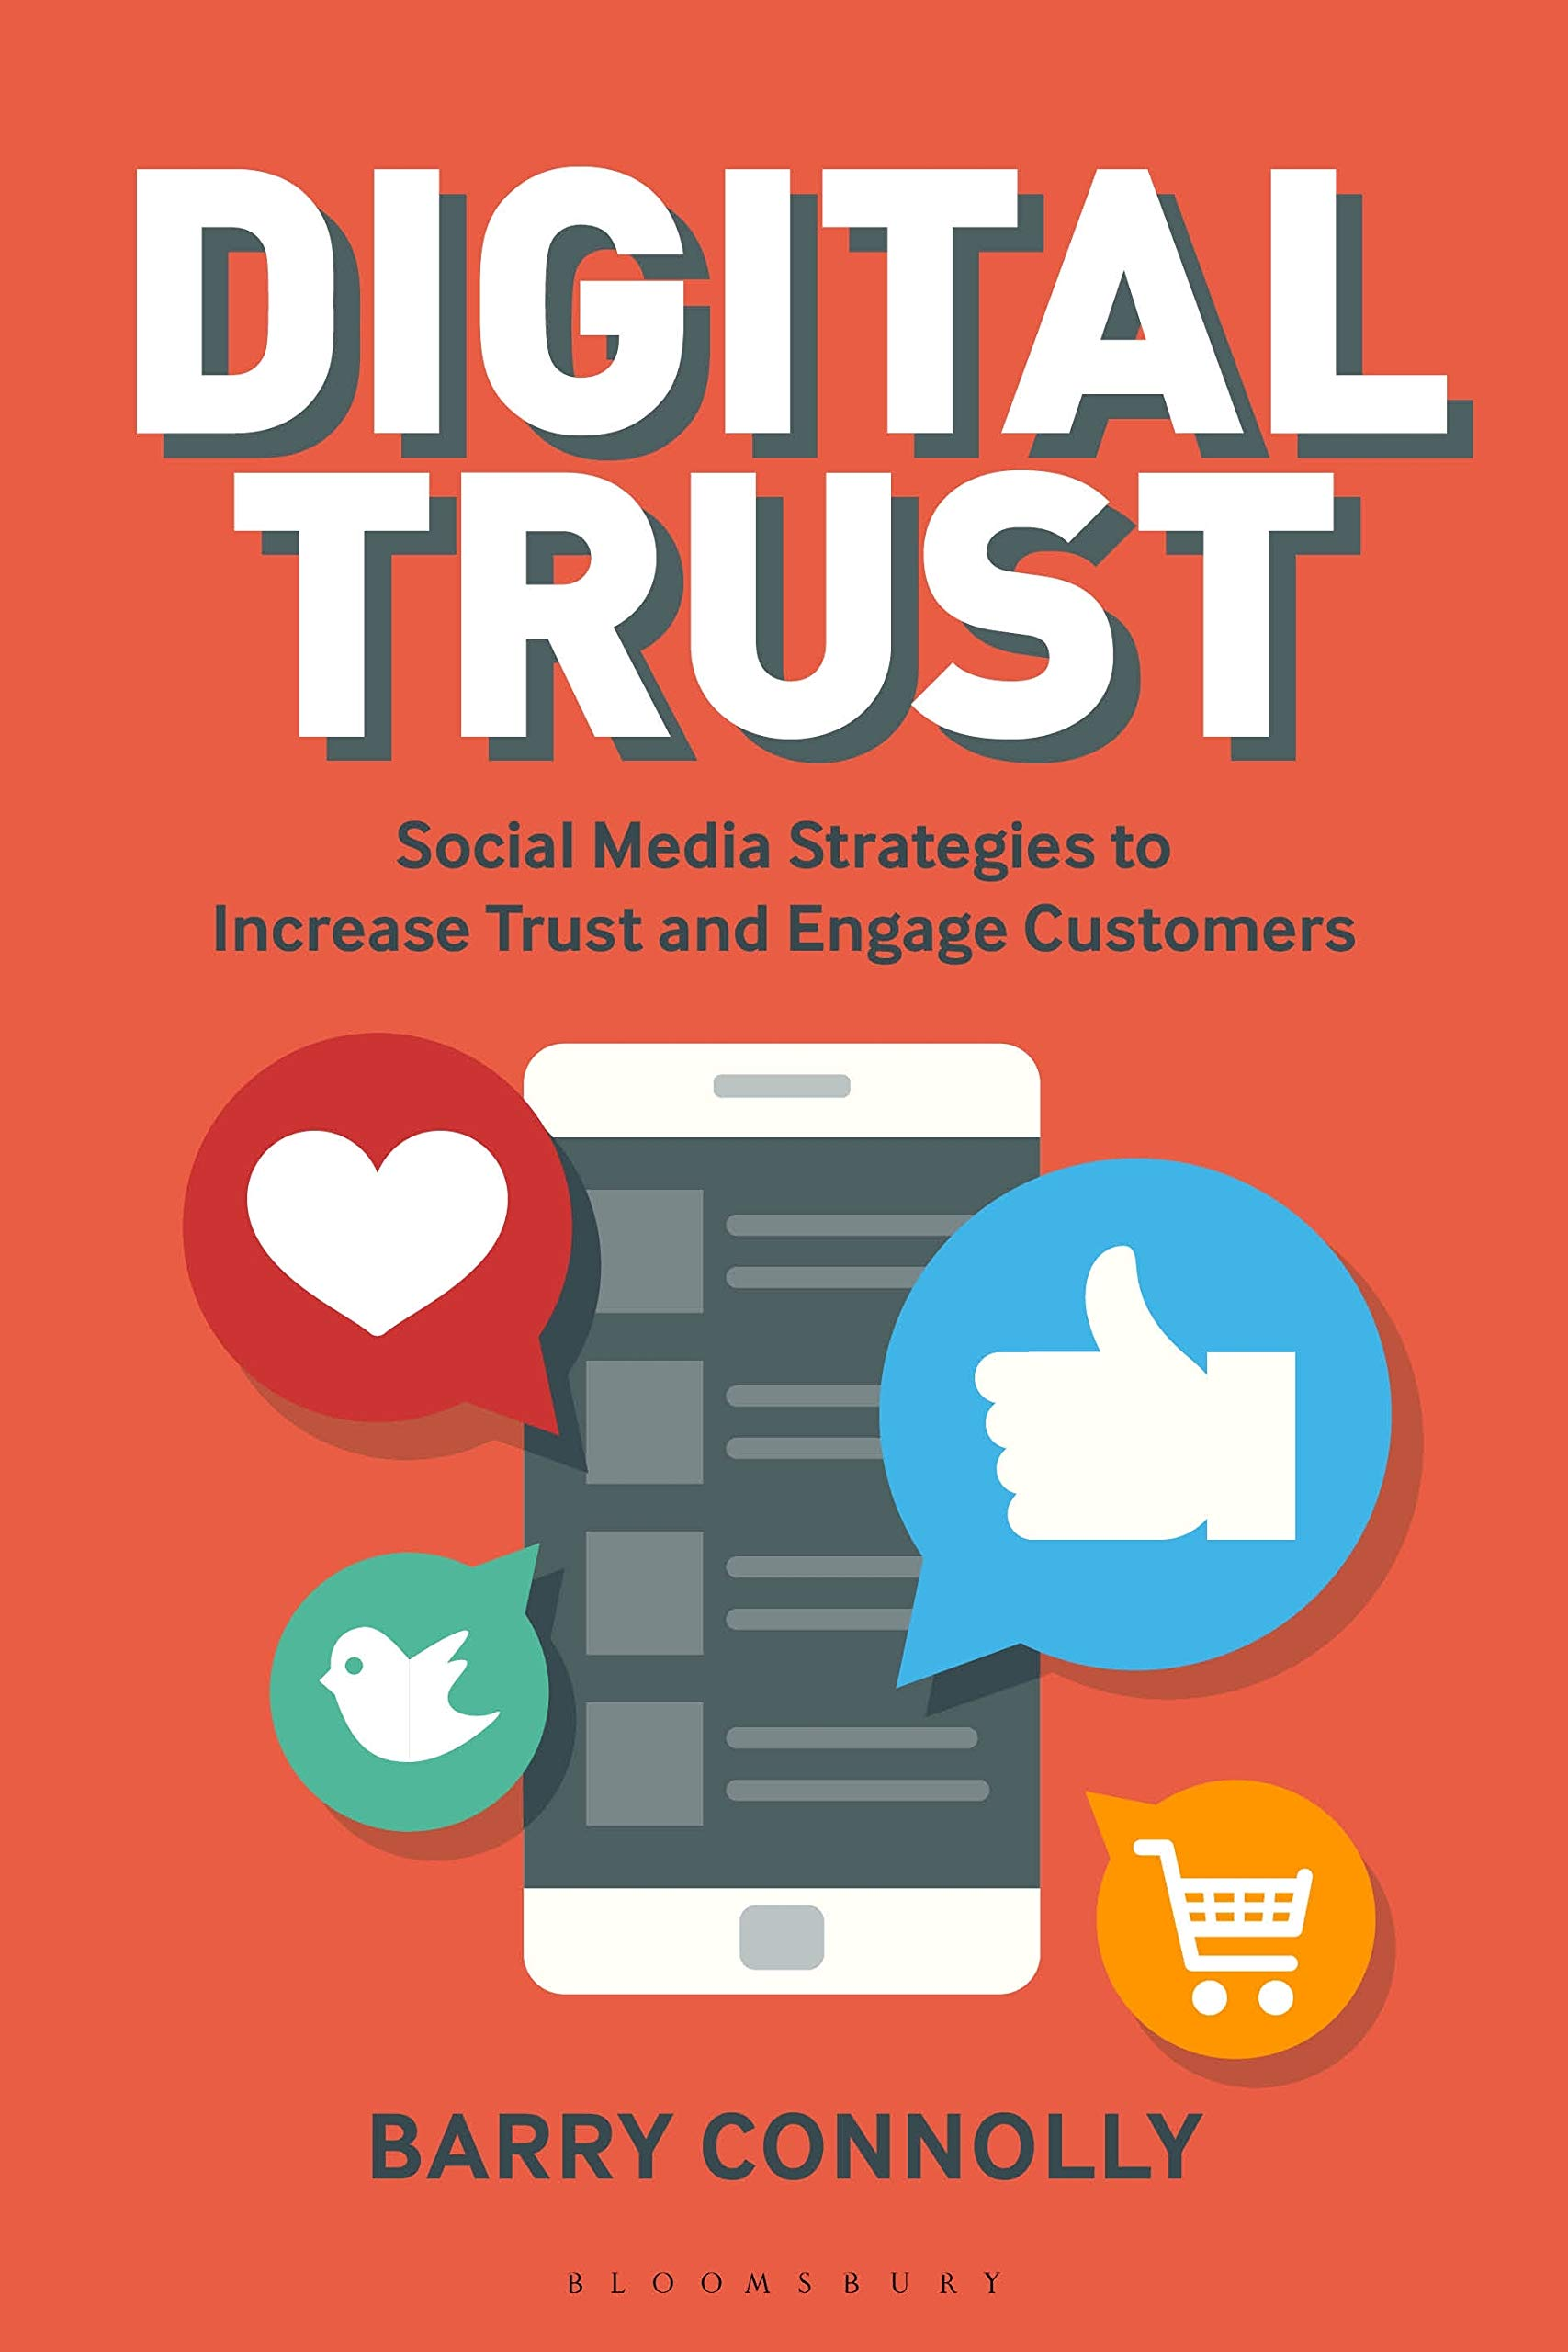 Digital Trust: Social Media Strategies to Increase Trust and Engage Customers by Barry Connelly